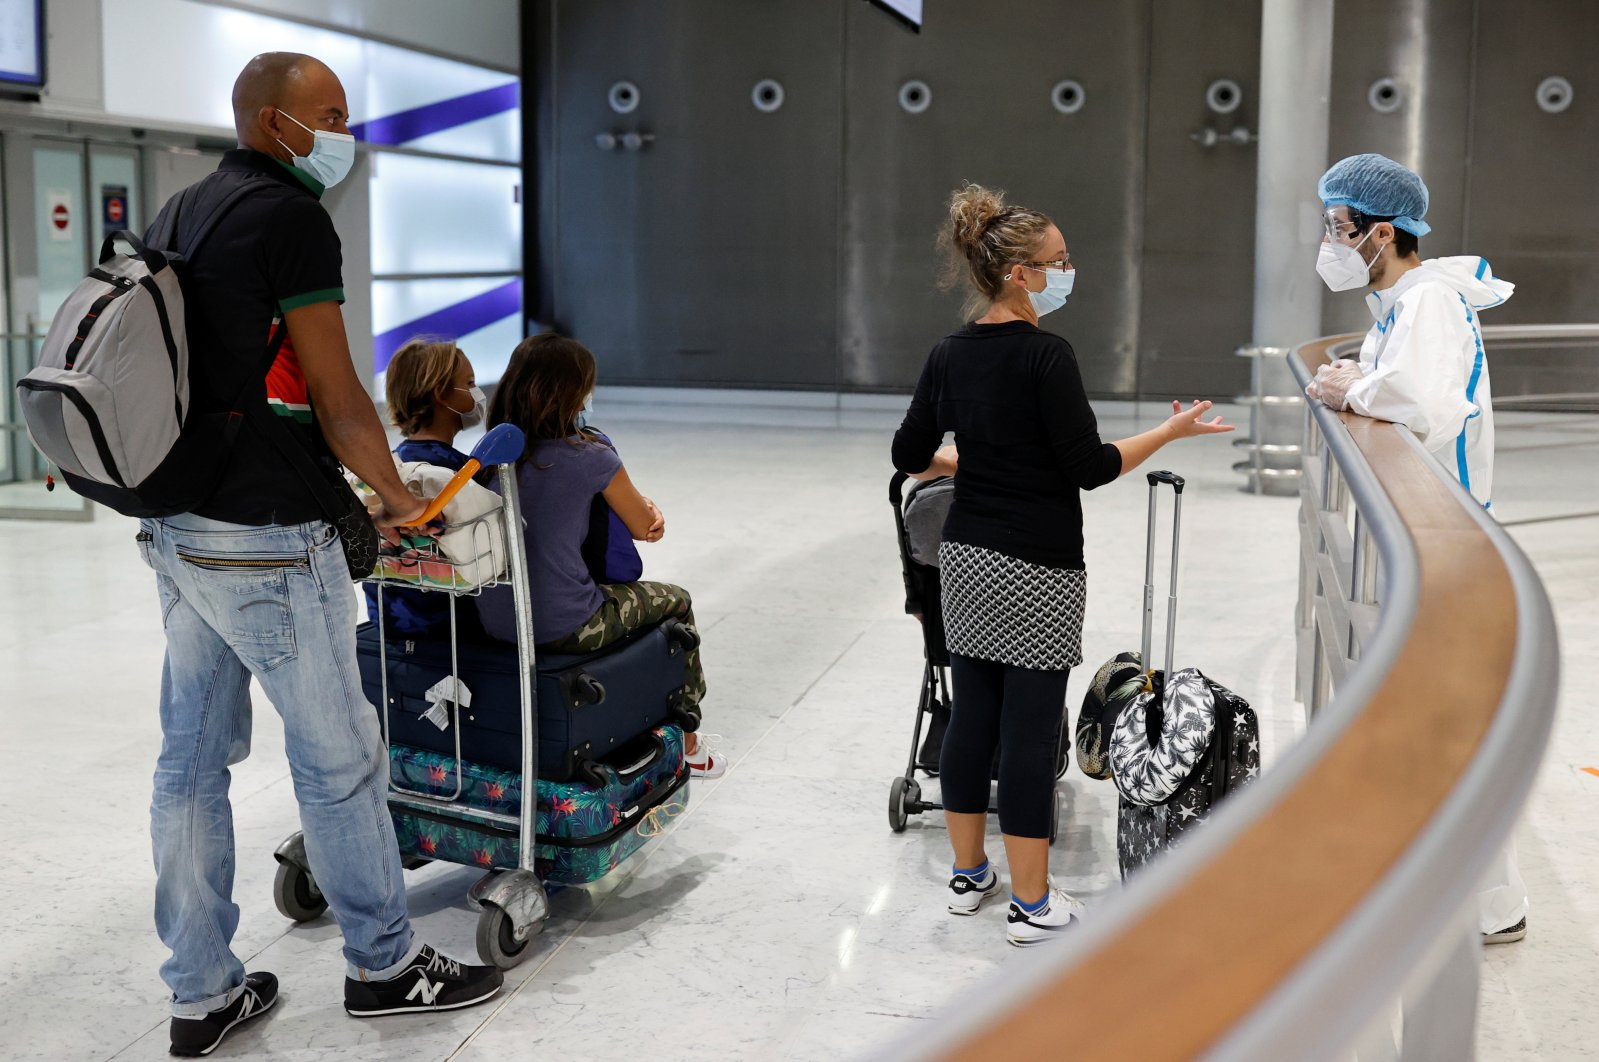 A health worker wearing protective gear talks with passengers to be tested for COVID-19 on arrival at Charles de Gaulle airport amid the coronavirus disease (COVID-19) outbreak, in Roissy, near Paris, France on July 31, 2020. (Reuters Photo)